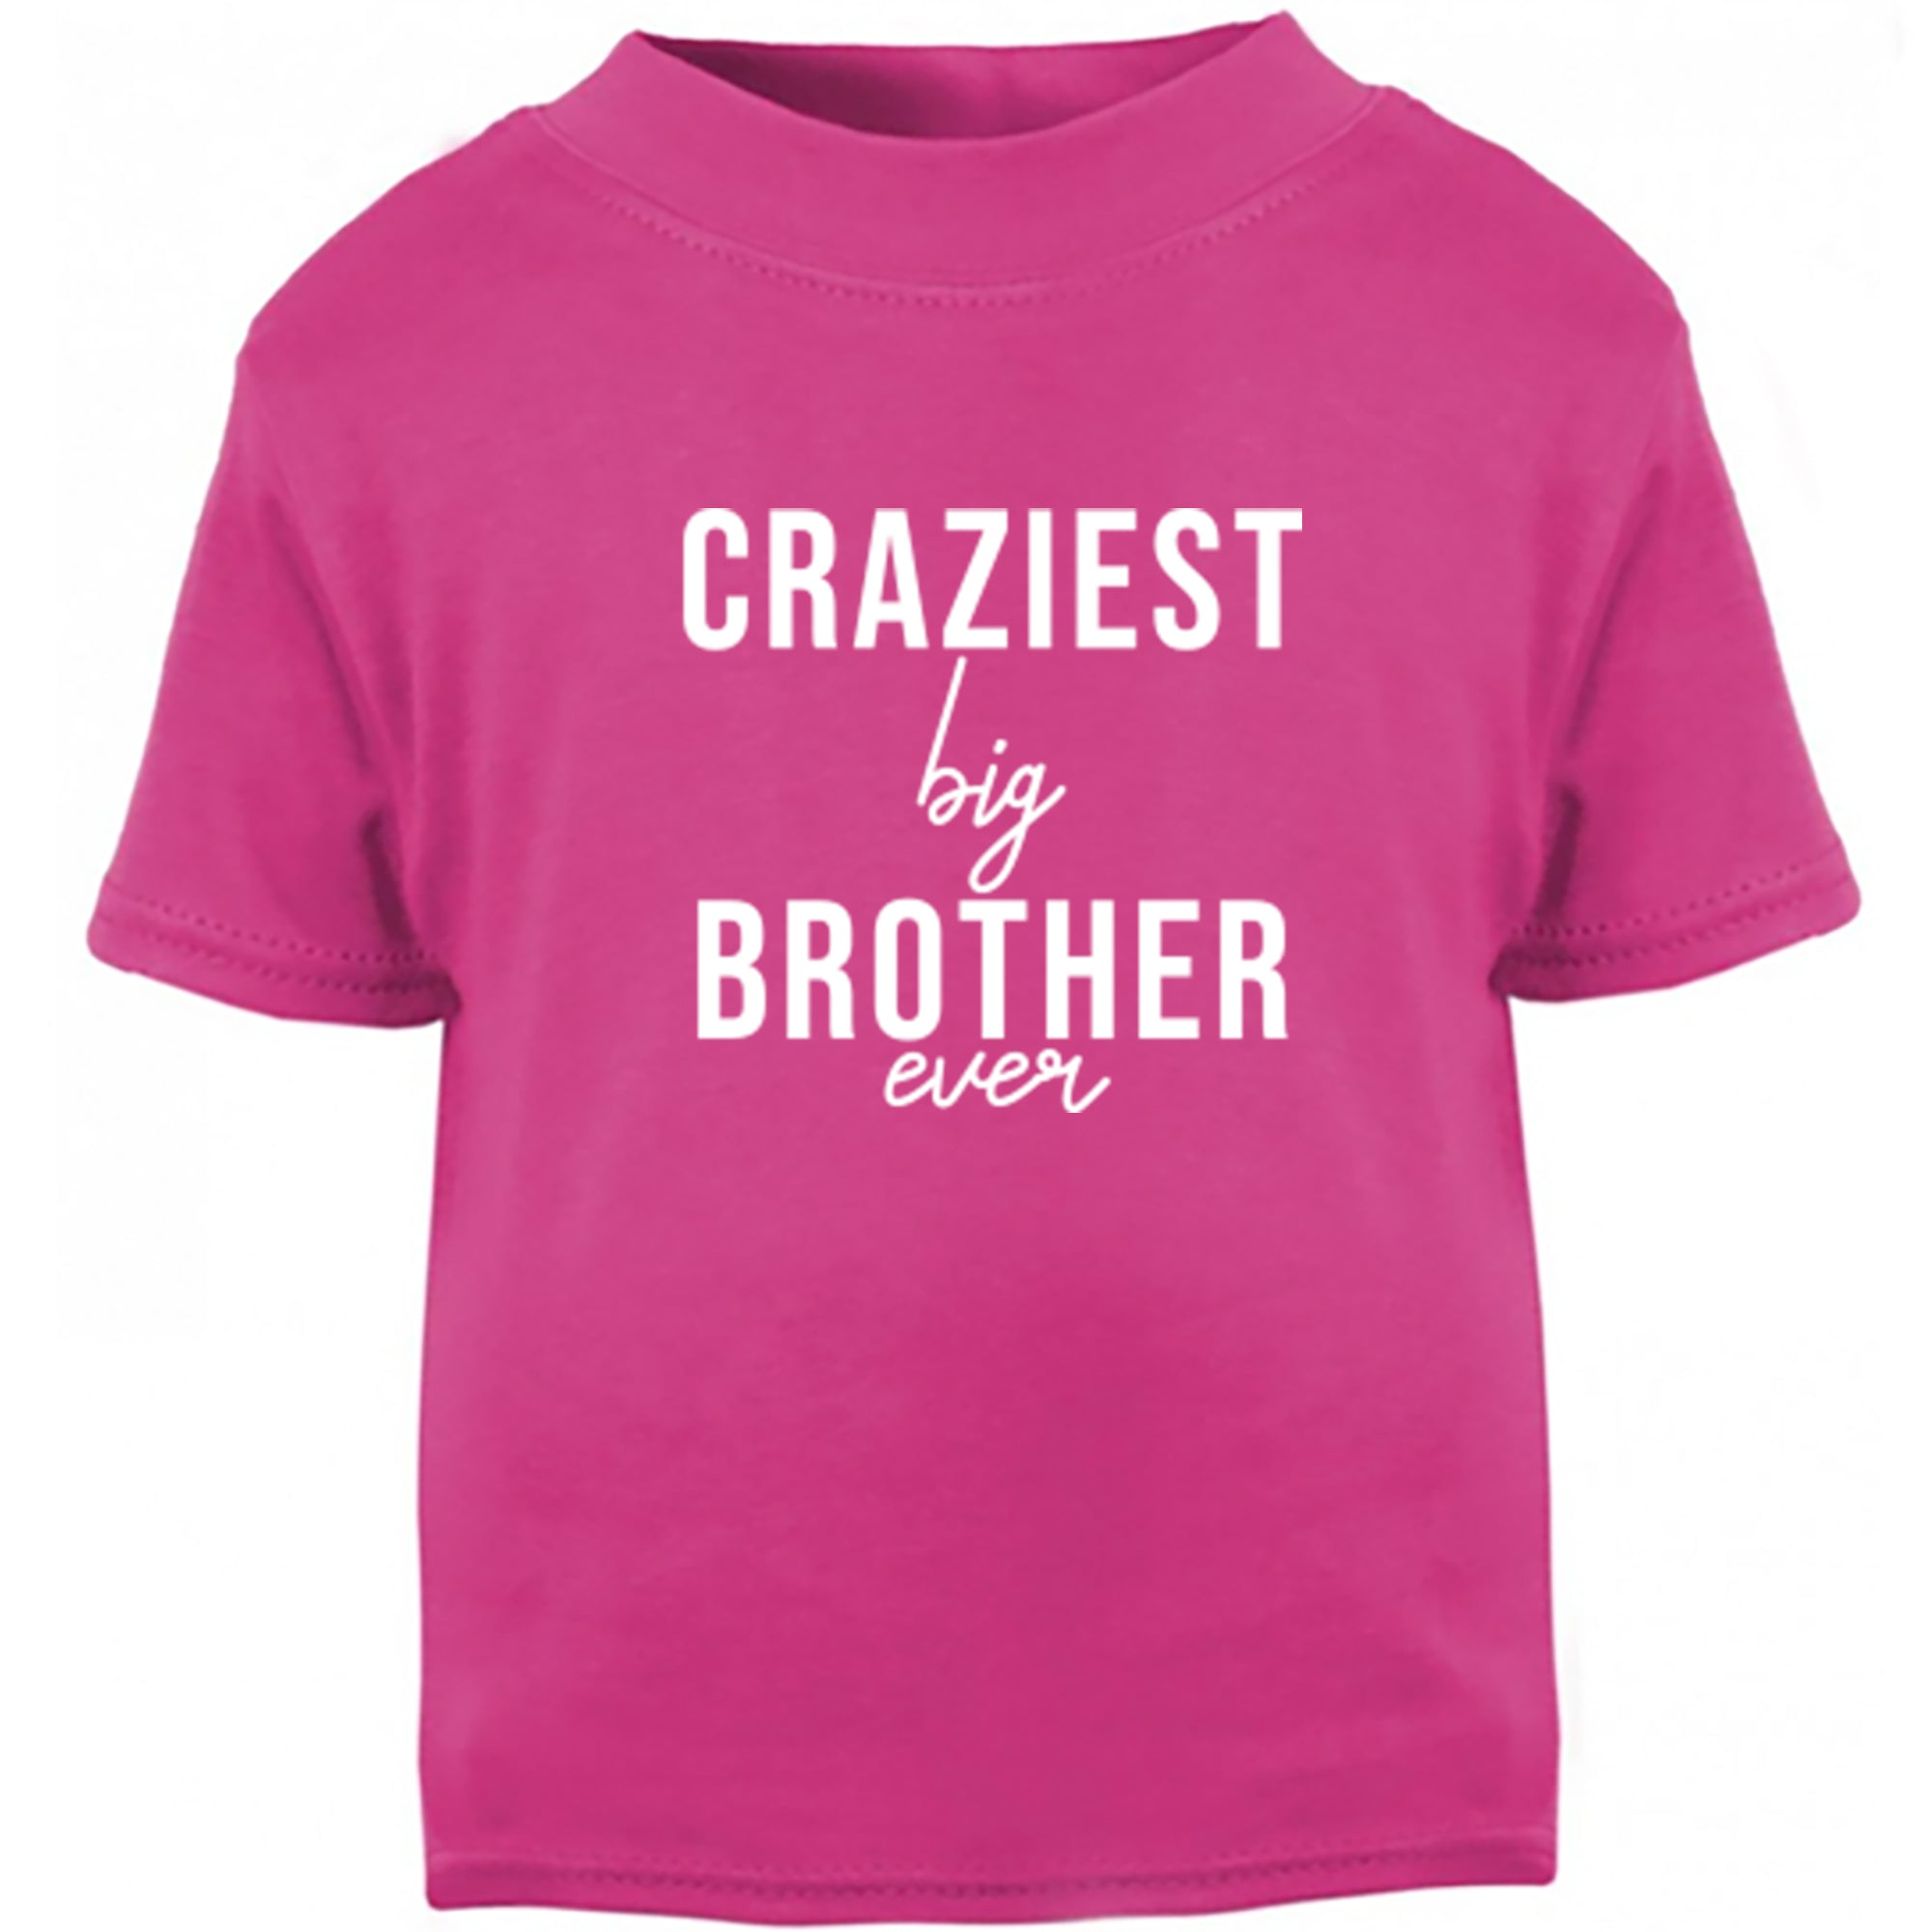 Craziest Big Brother Ever Childrens Ages 3/4-12/14 Unisex Fit T-Shirt S0524 - Illustrated Identity Ltd.